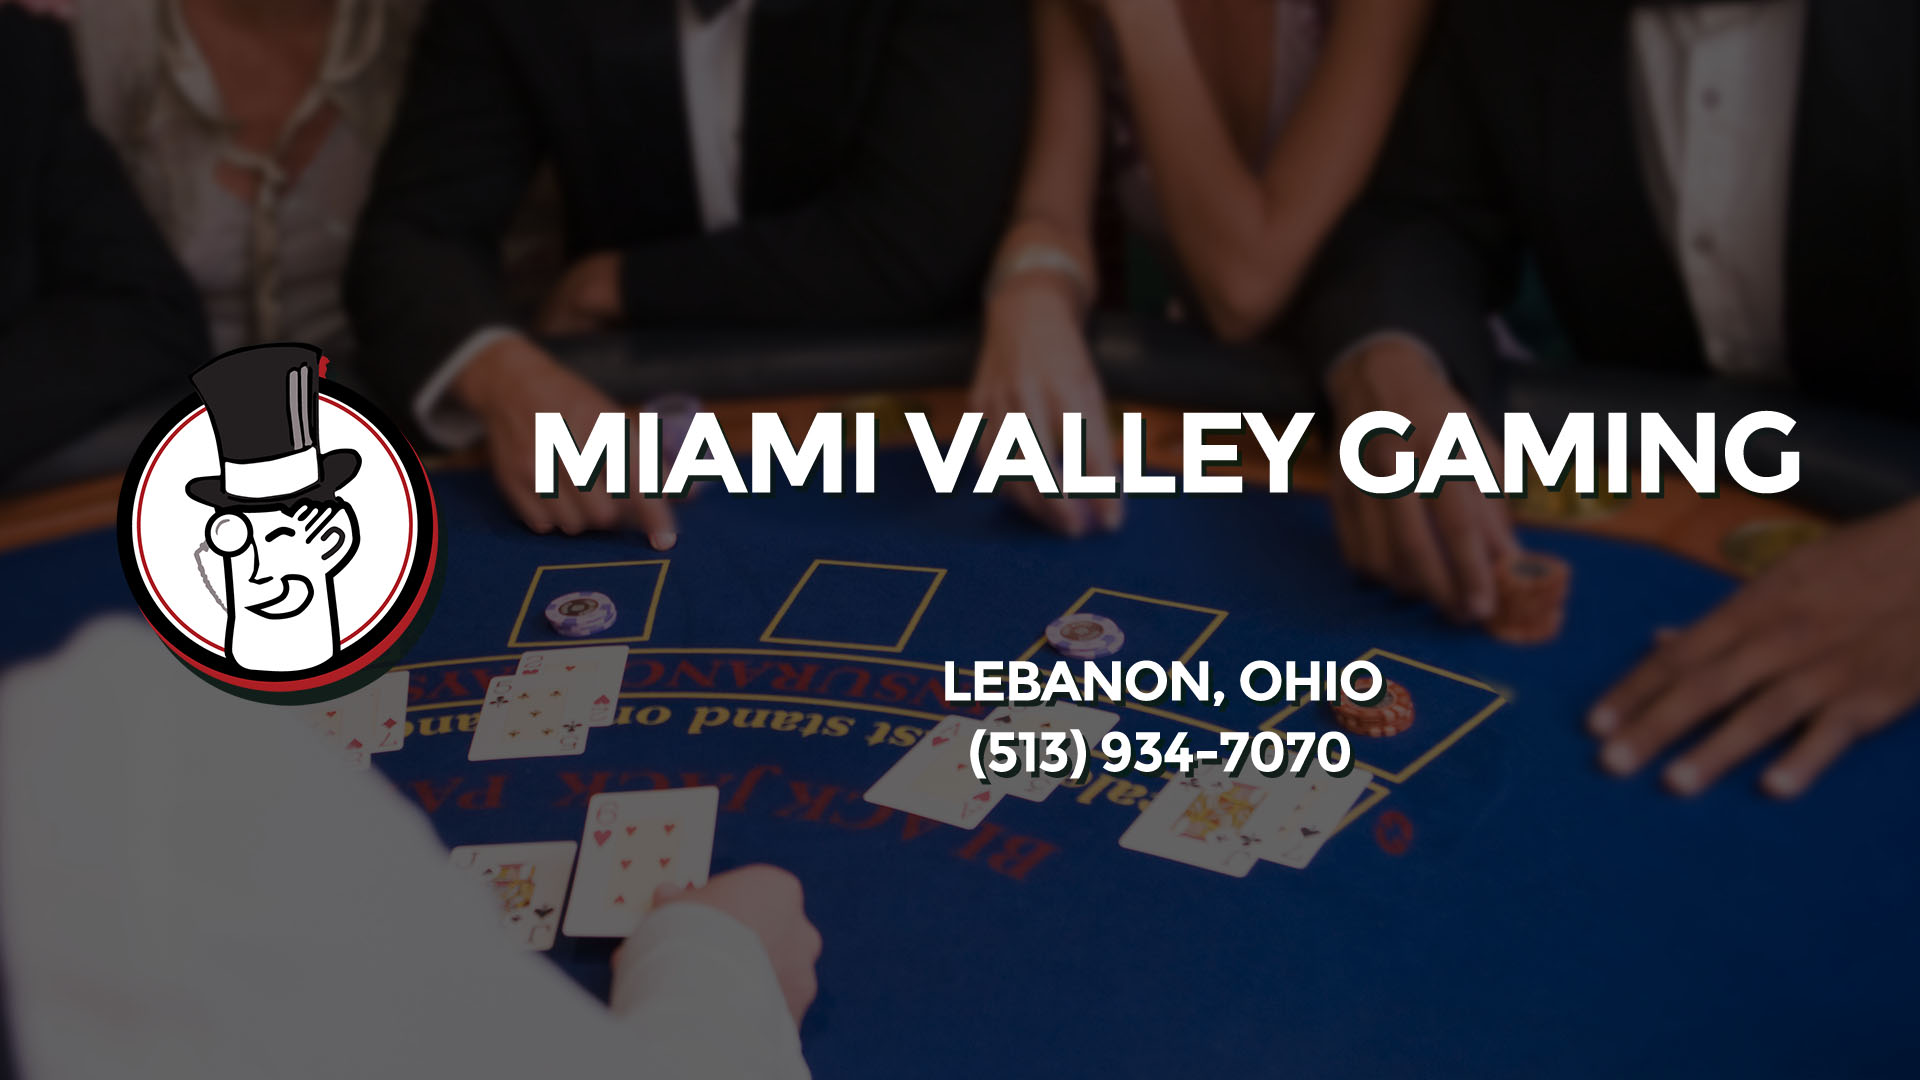 MIAMI VALLEY GAMING LEBANON OH